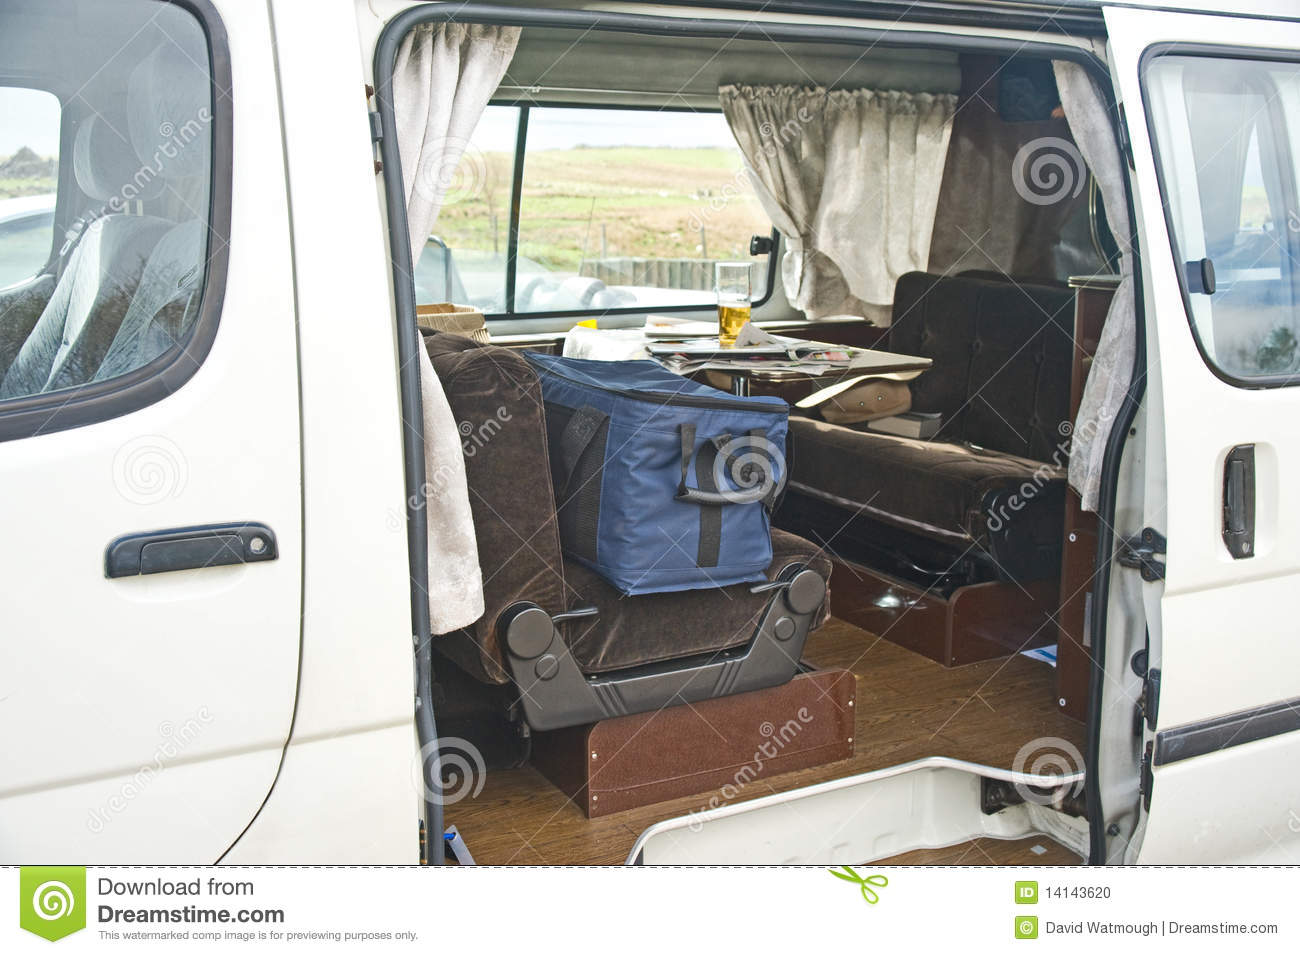 Camping car int rieur confortable photo stock image for Interieur camping car